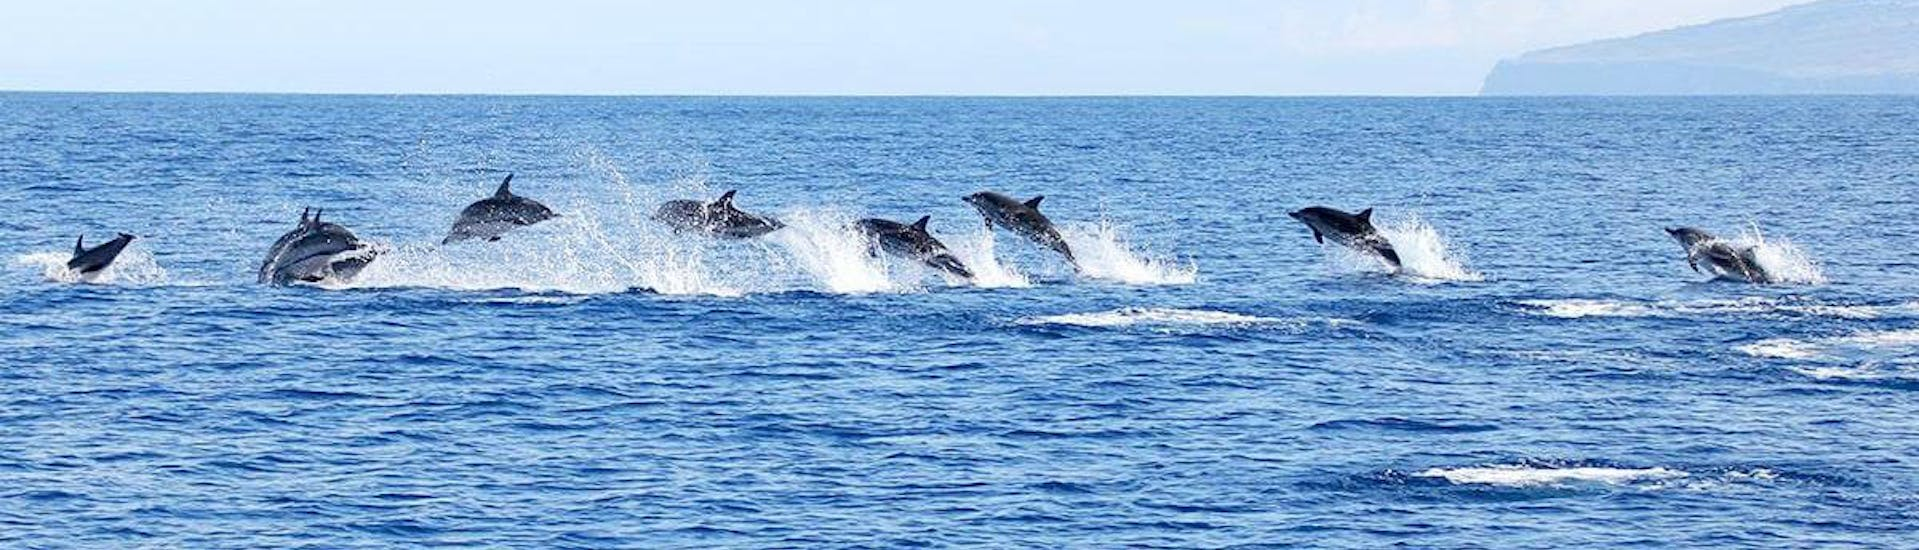 Sea Experience - Swimming with Dolphins